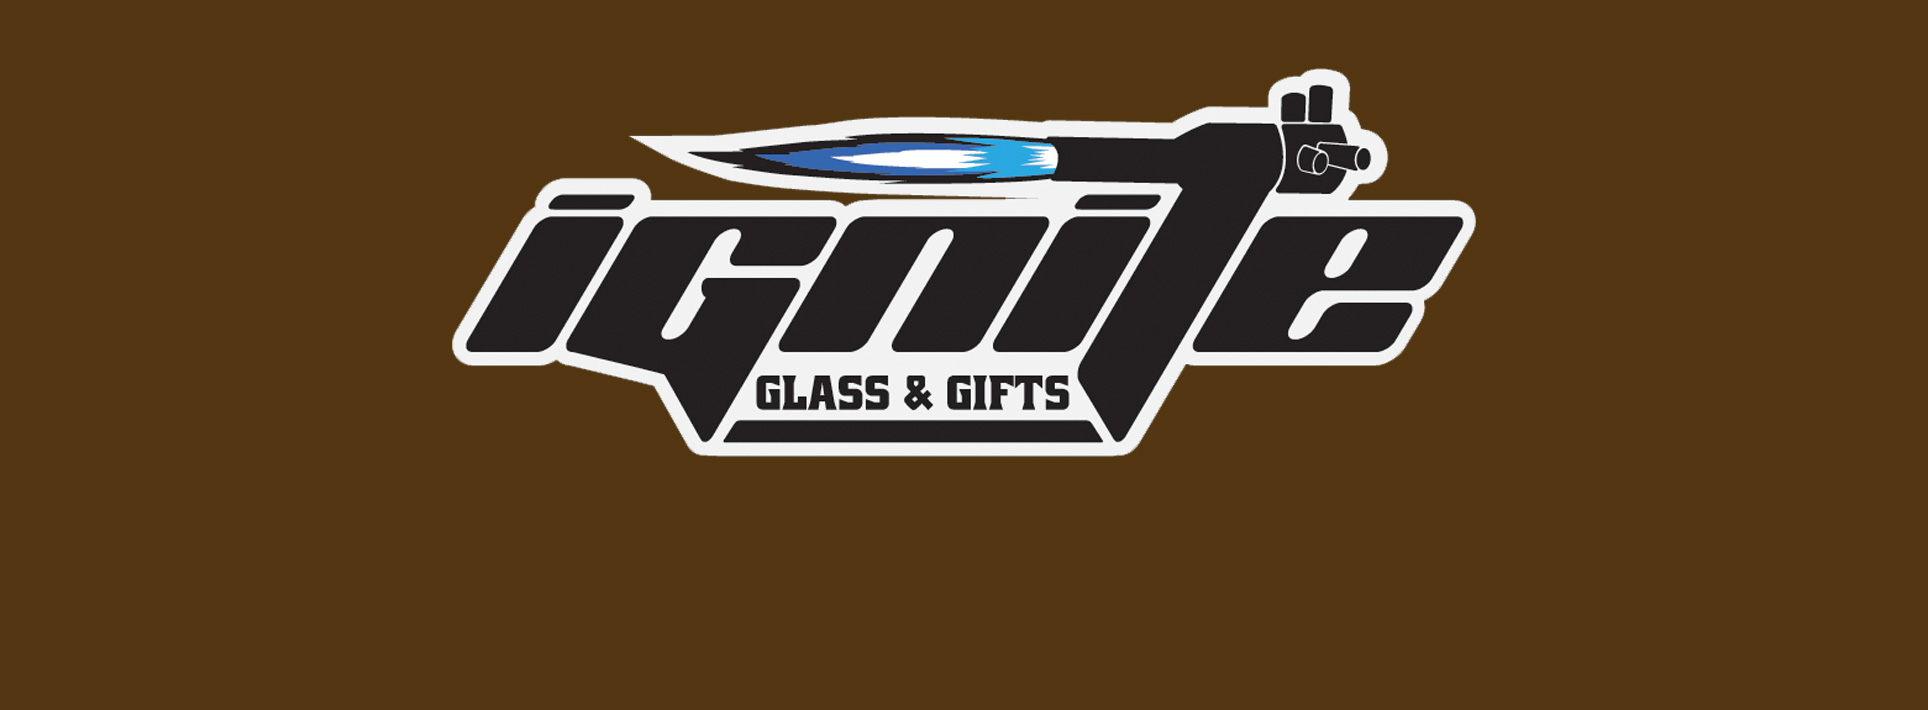 Ignite Glass and Gifts